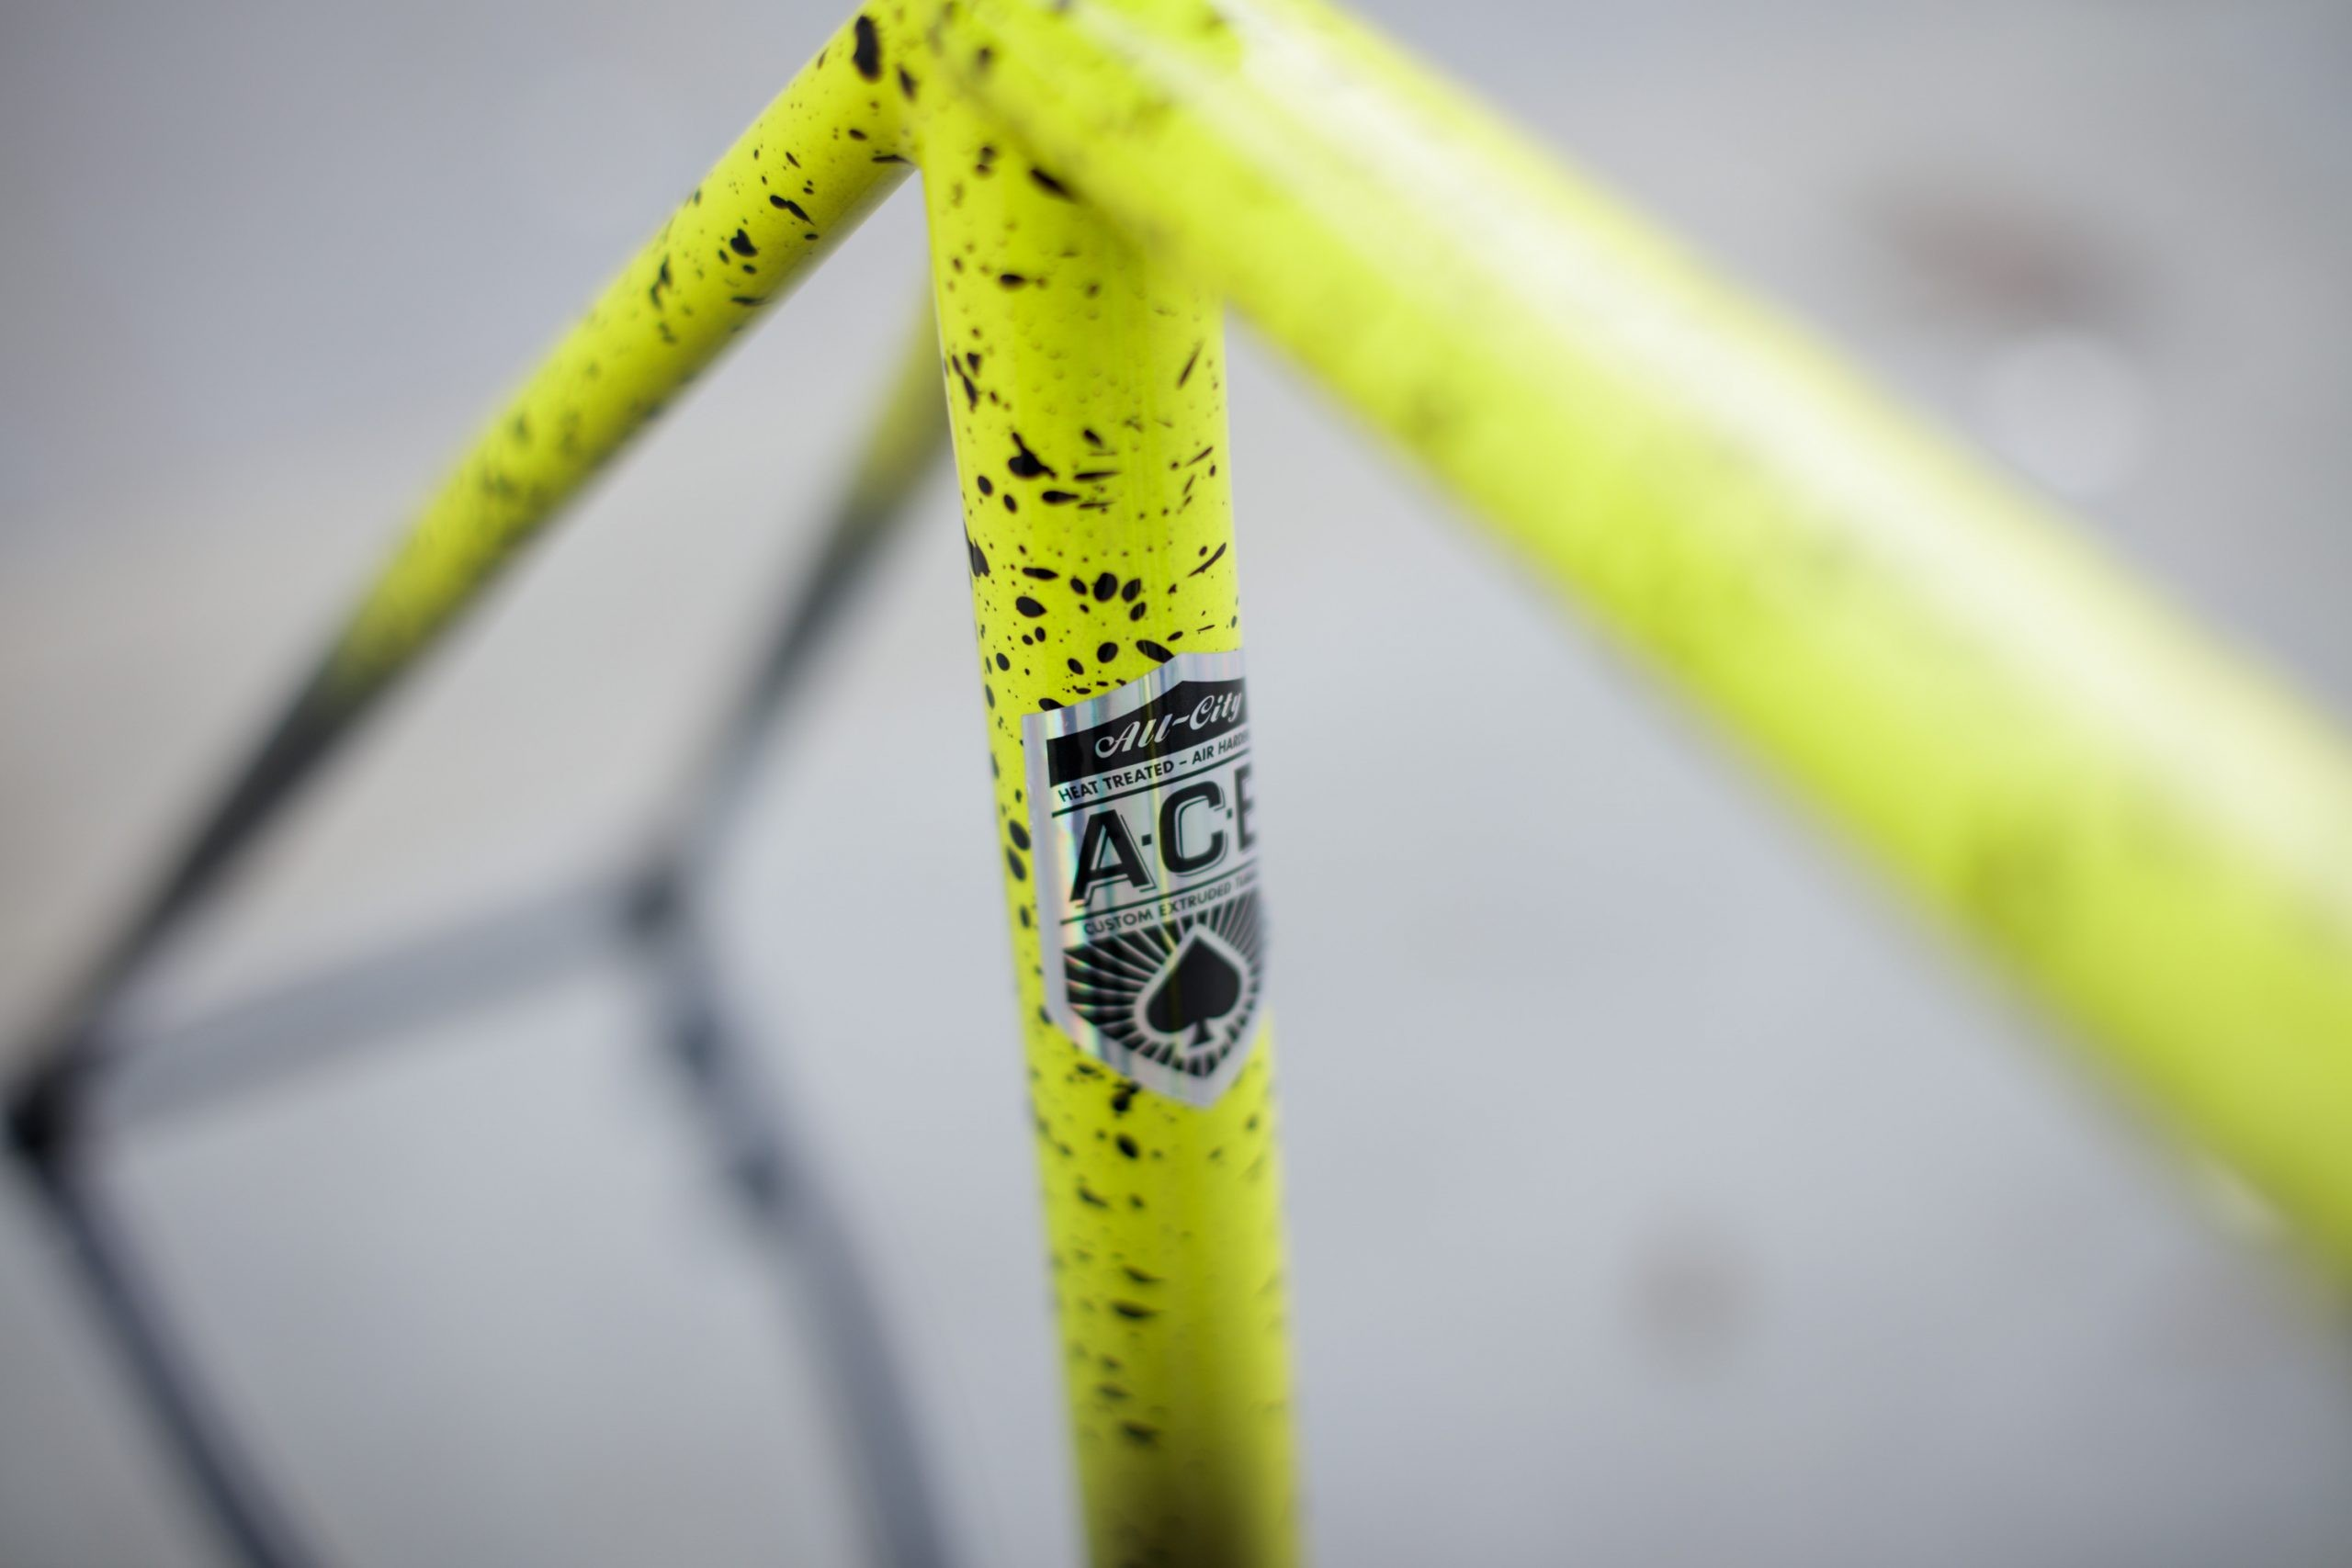 The A.C.E. tubing is proprietary to All-City.